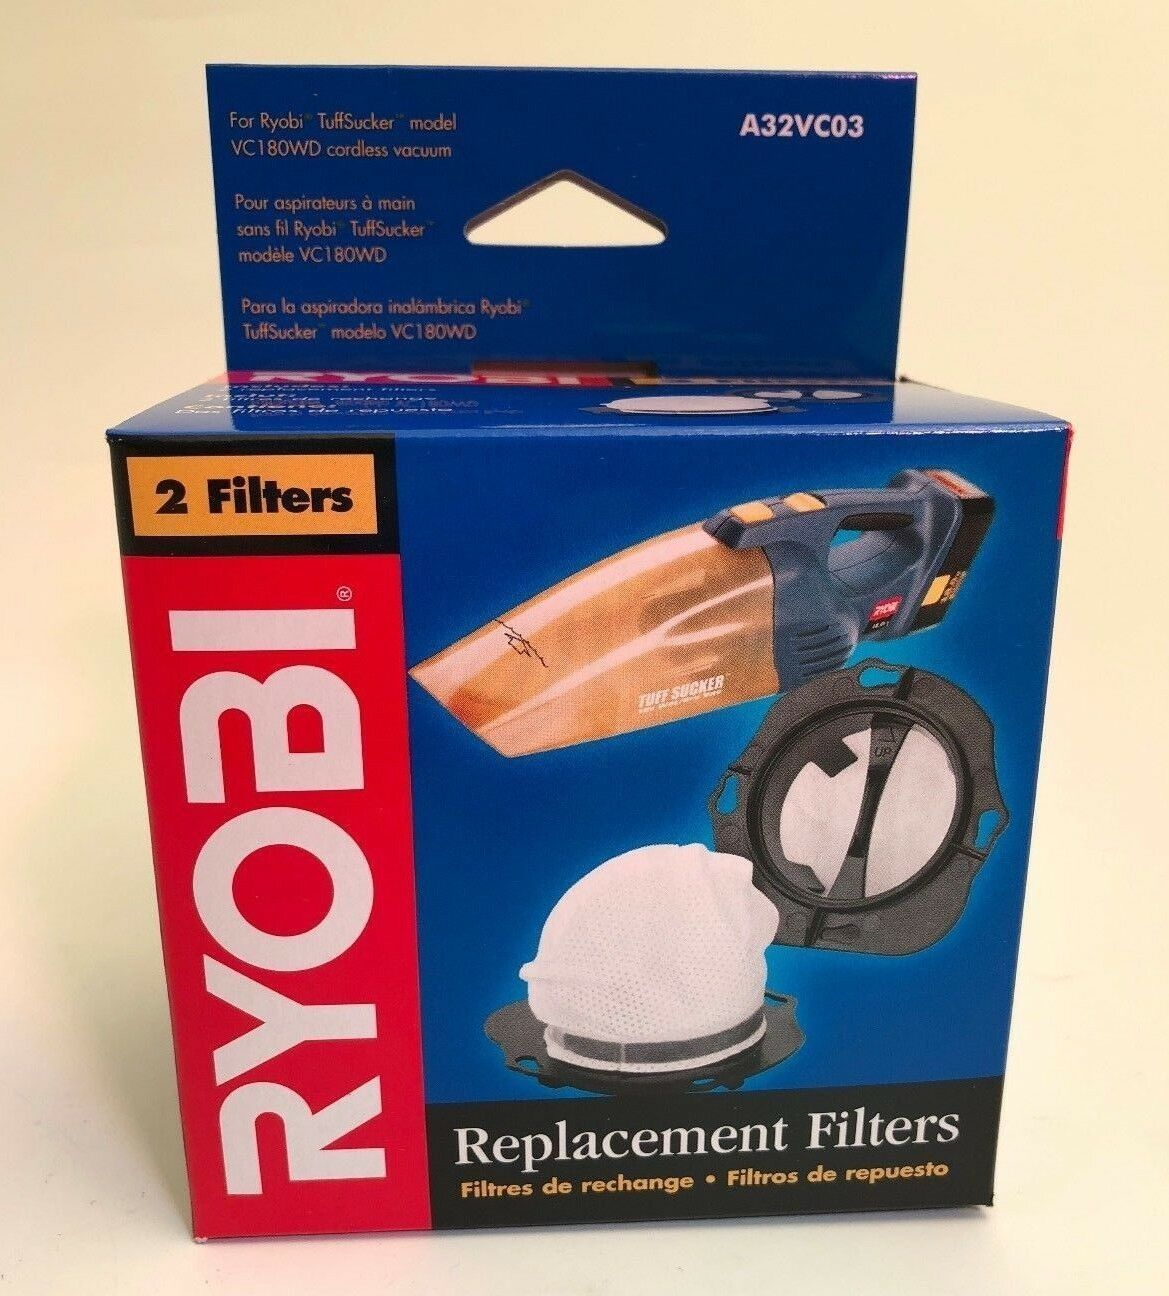 Primary image for Ryobi Vacuum Replacement Filters A32VC03 Pack